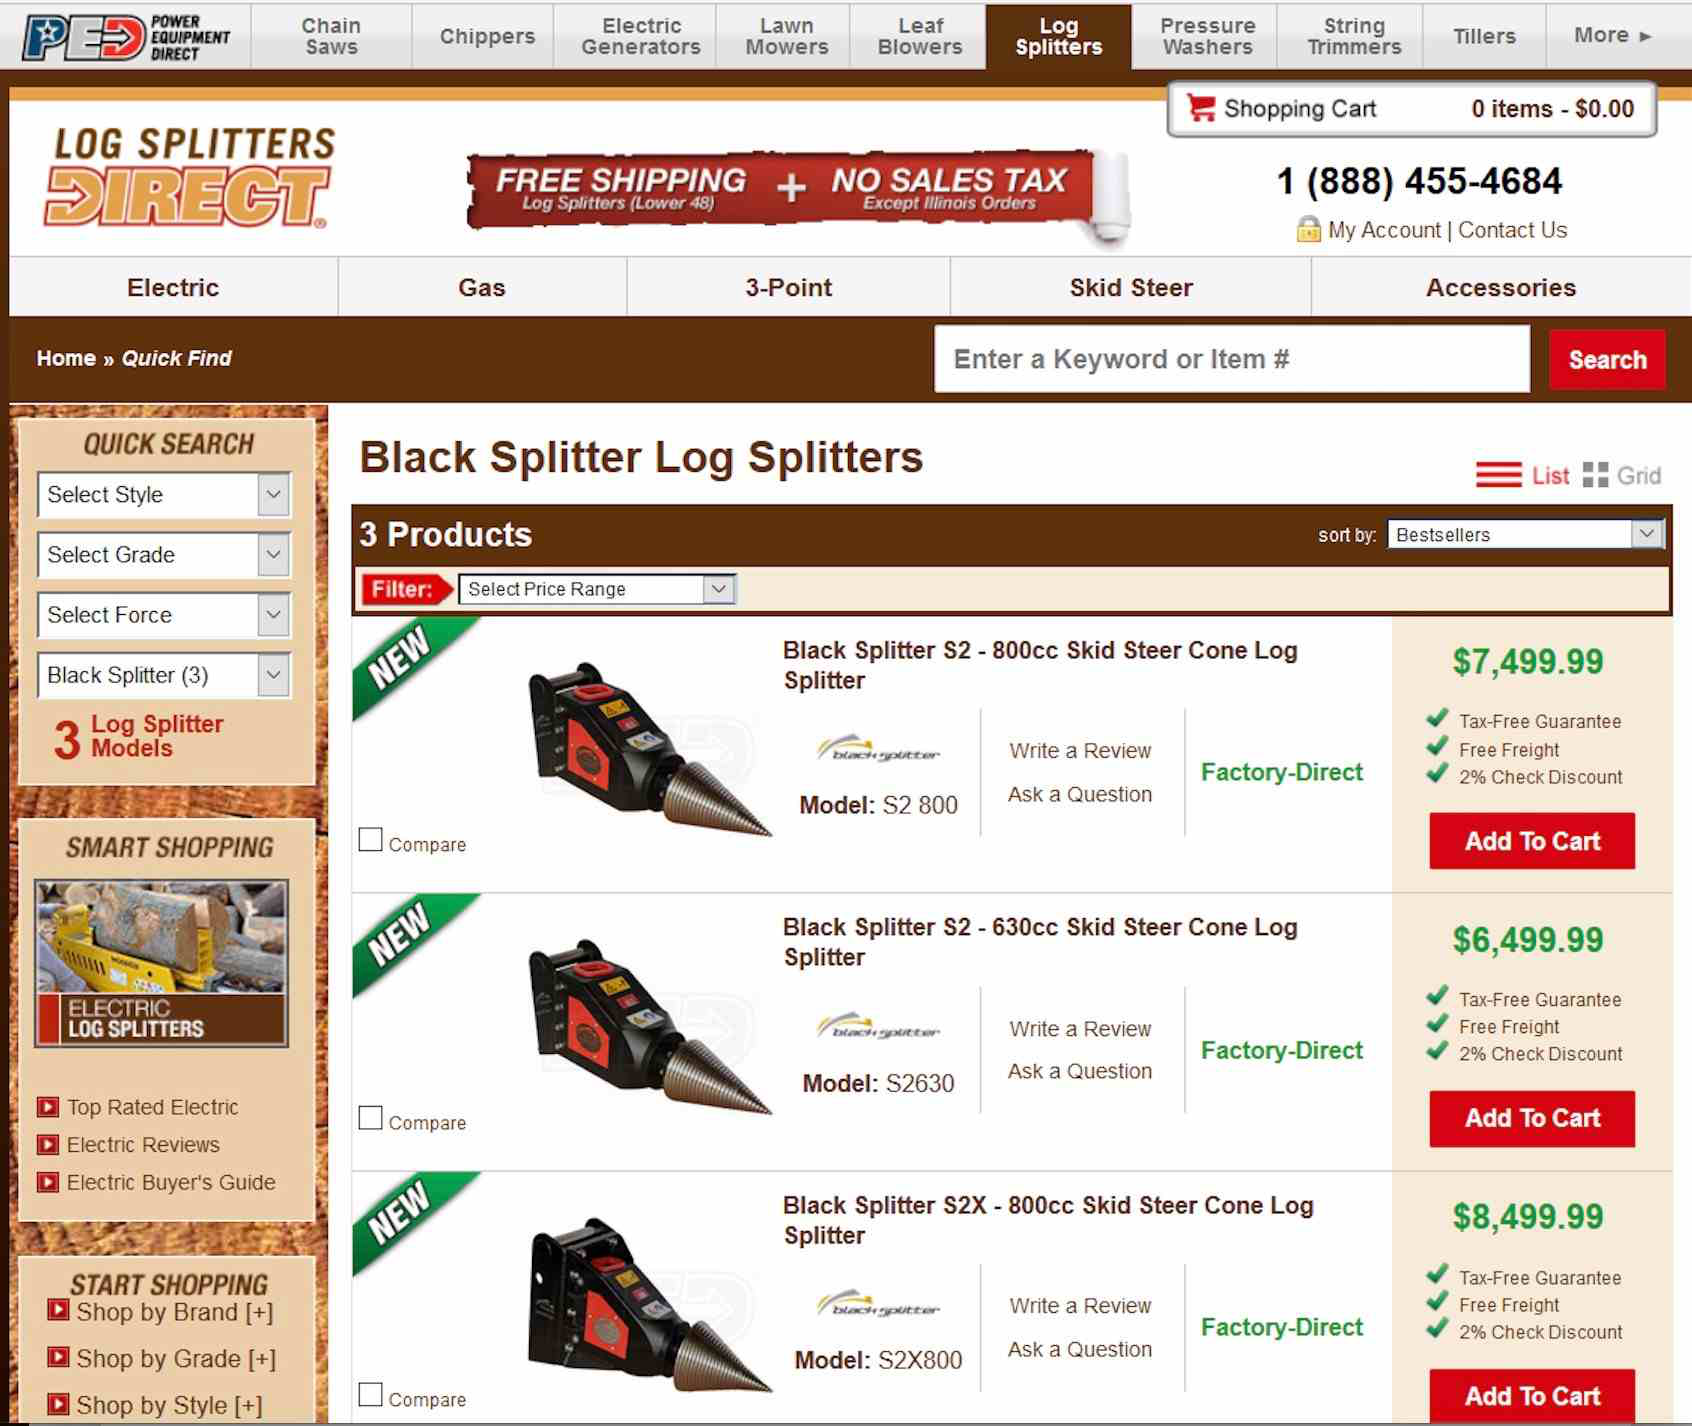 Product roundup: Black Splitter now offers attachments online